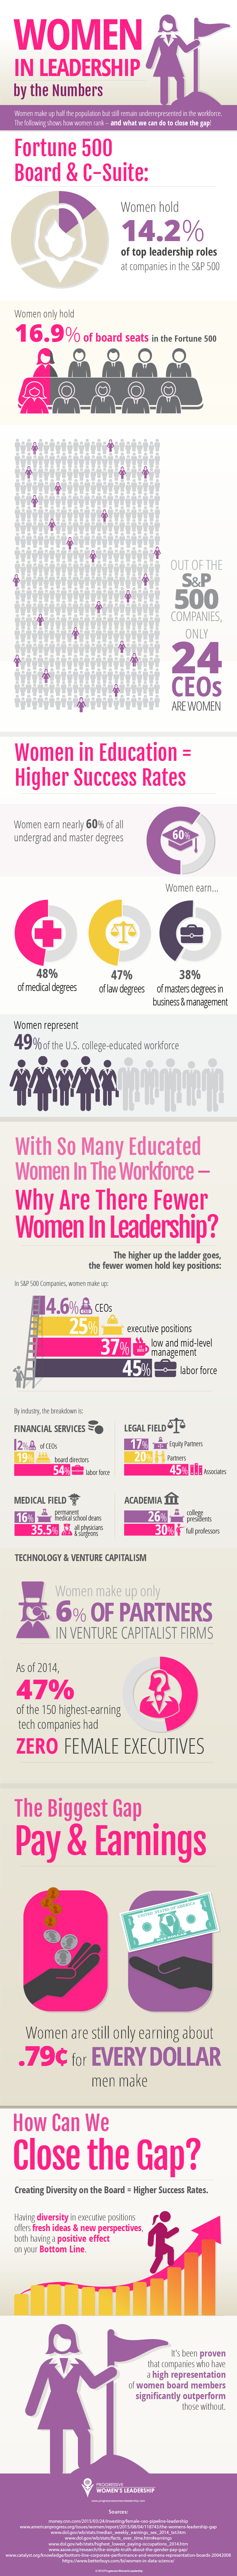 Women-in-leadership-by-the-numbers-pwl-infographic